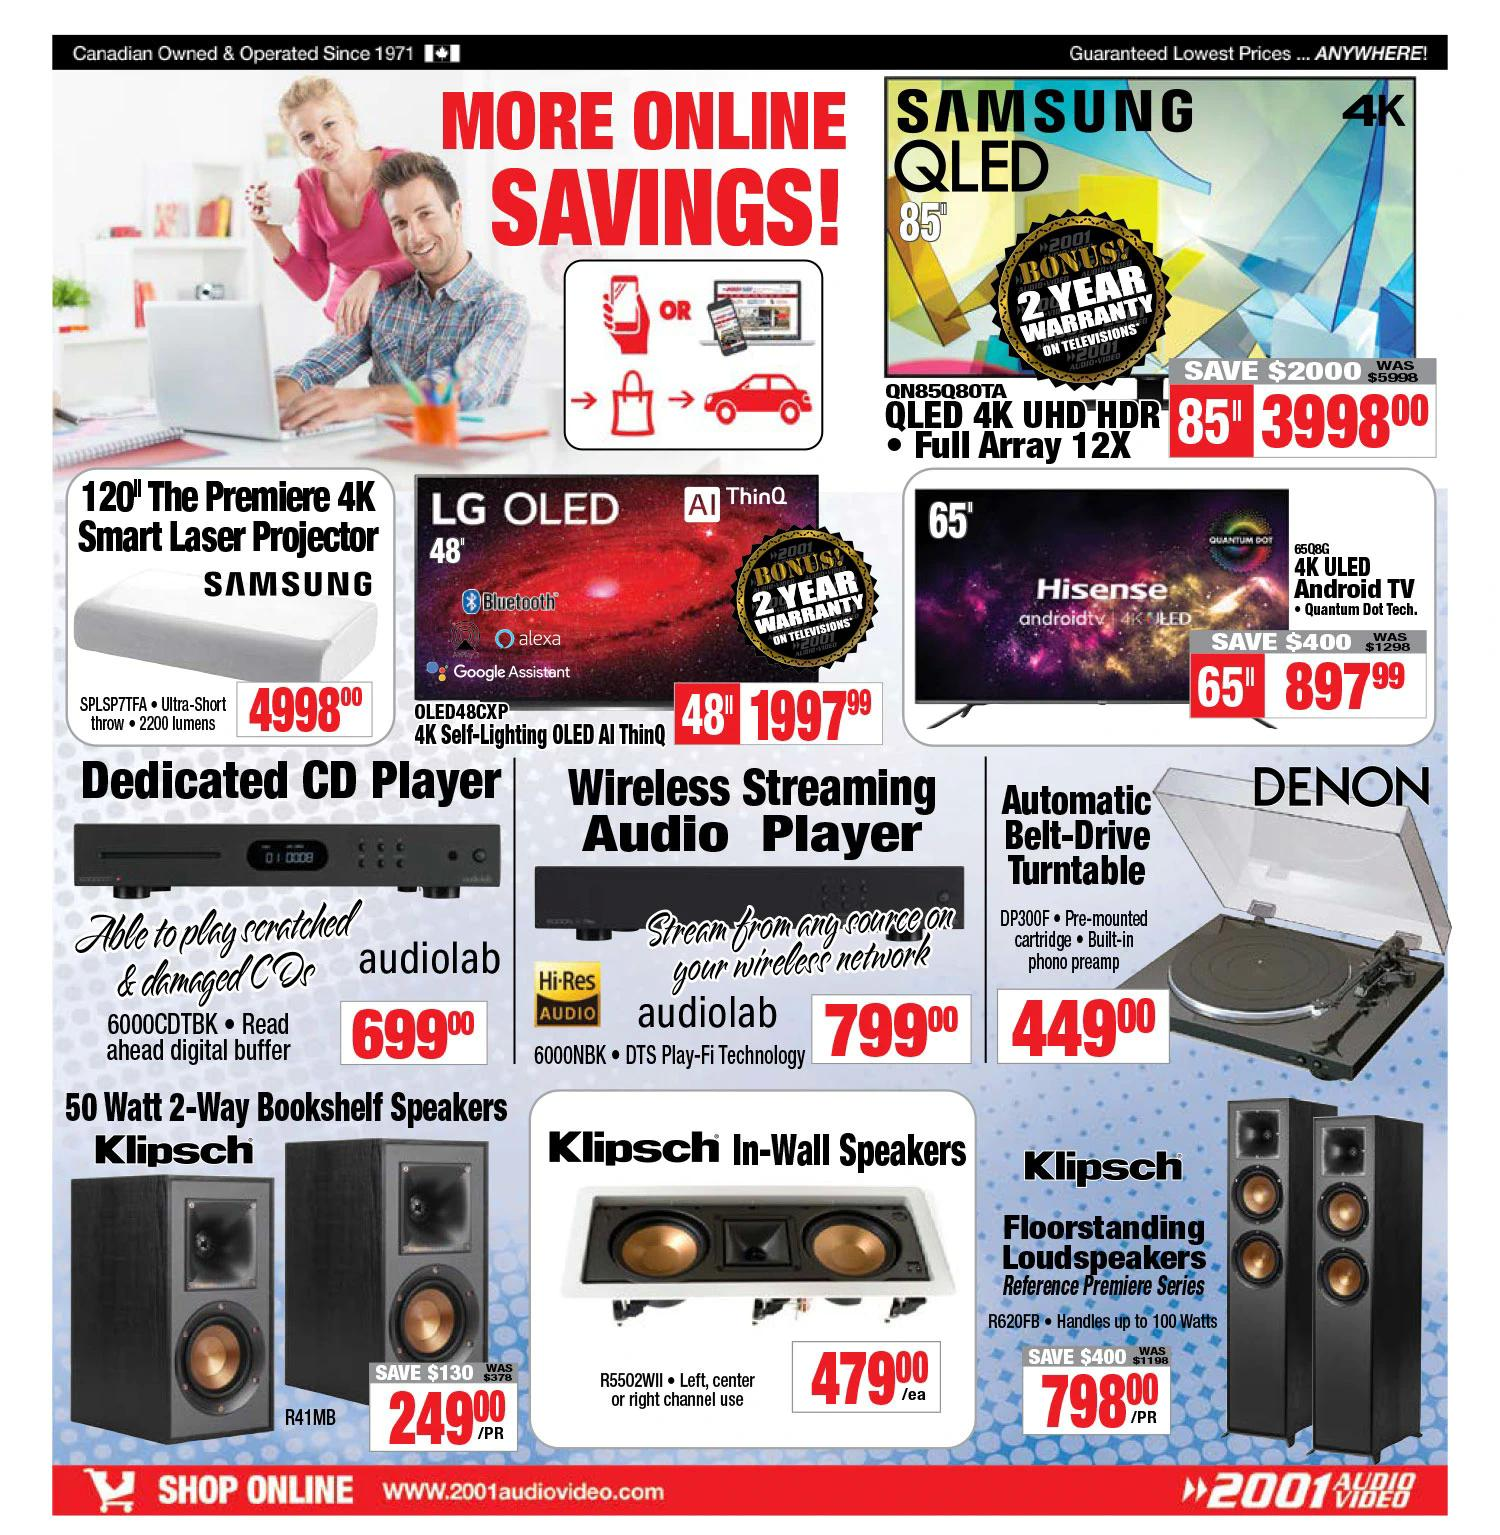 2001 Audio Video - Weekly Flyer Specials - Page 12